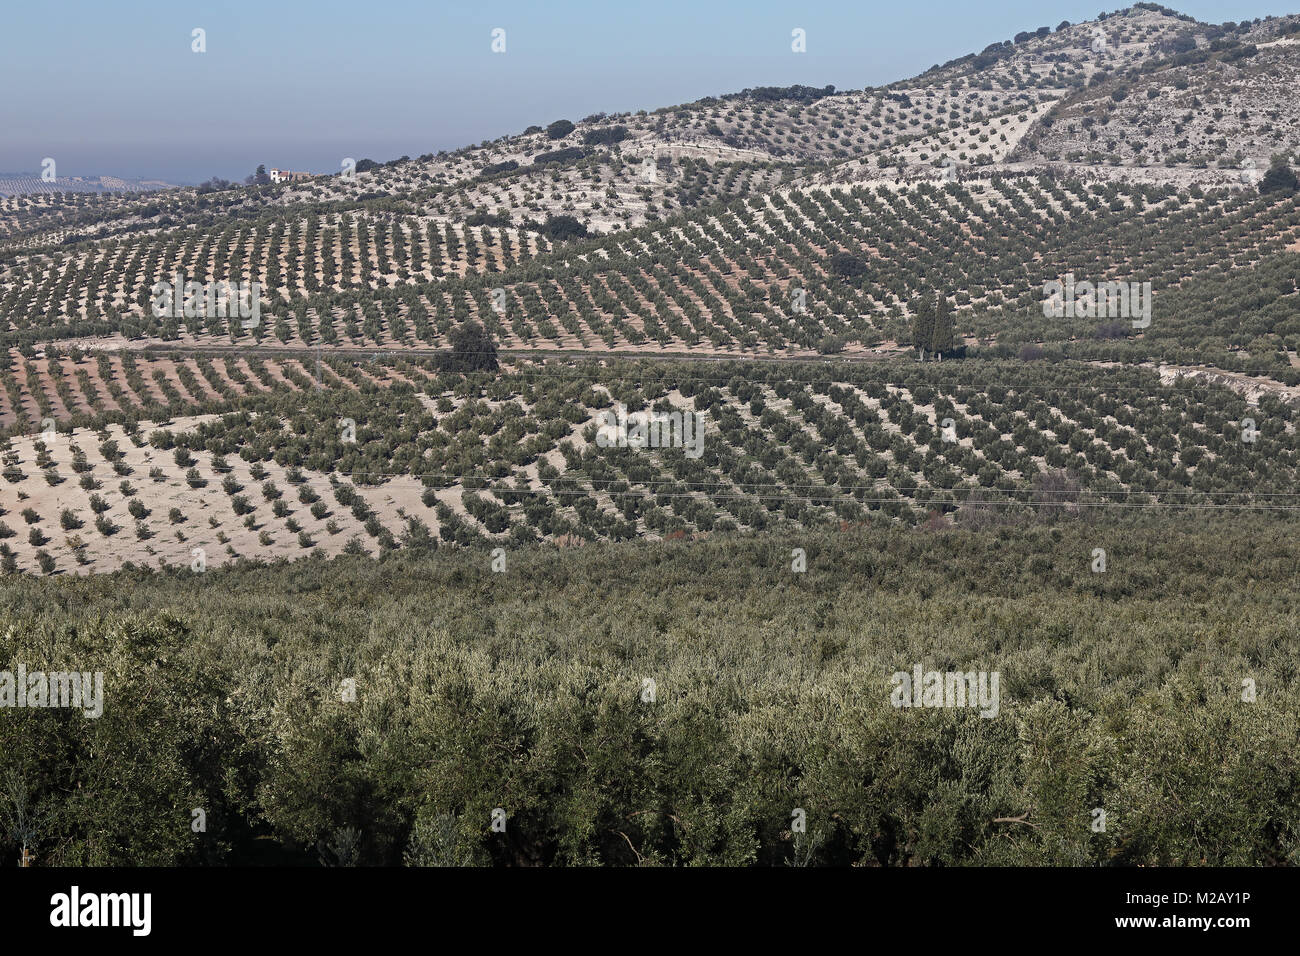 view over Olive groves  Jaen province, Region of Andalusia, Spain, Europe         January Stock Photo